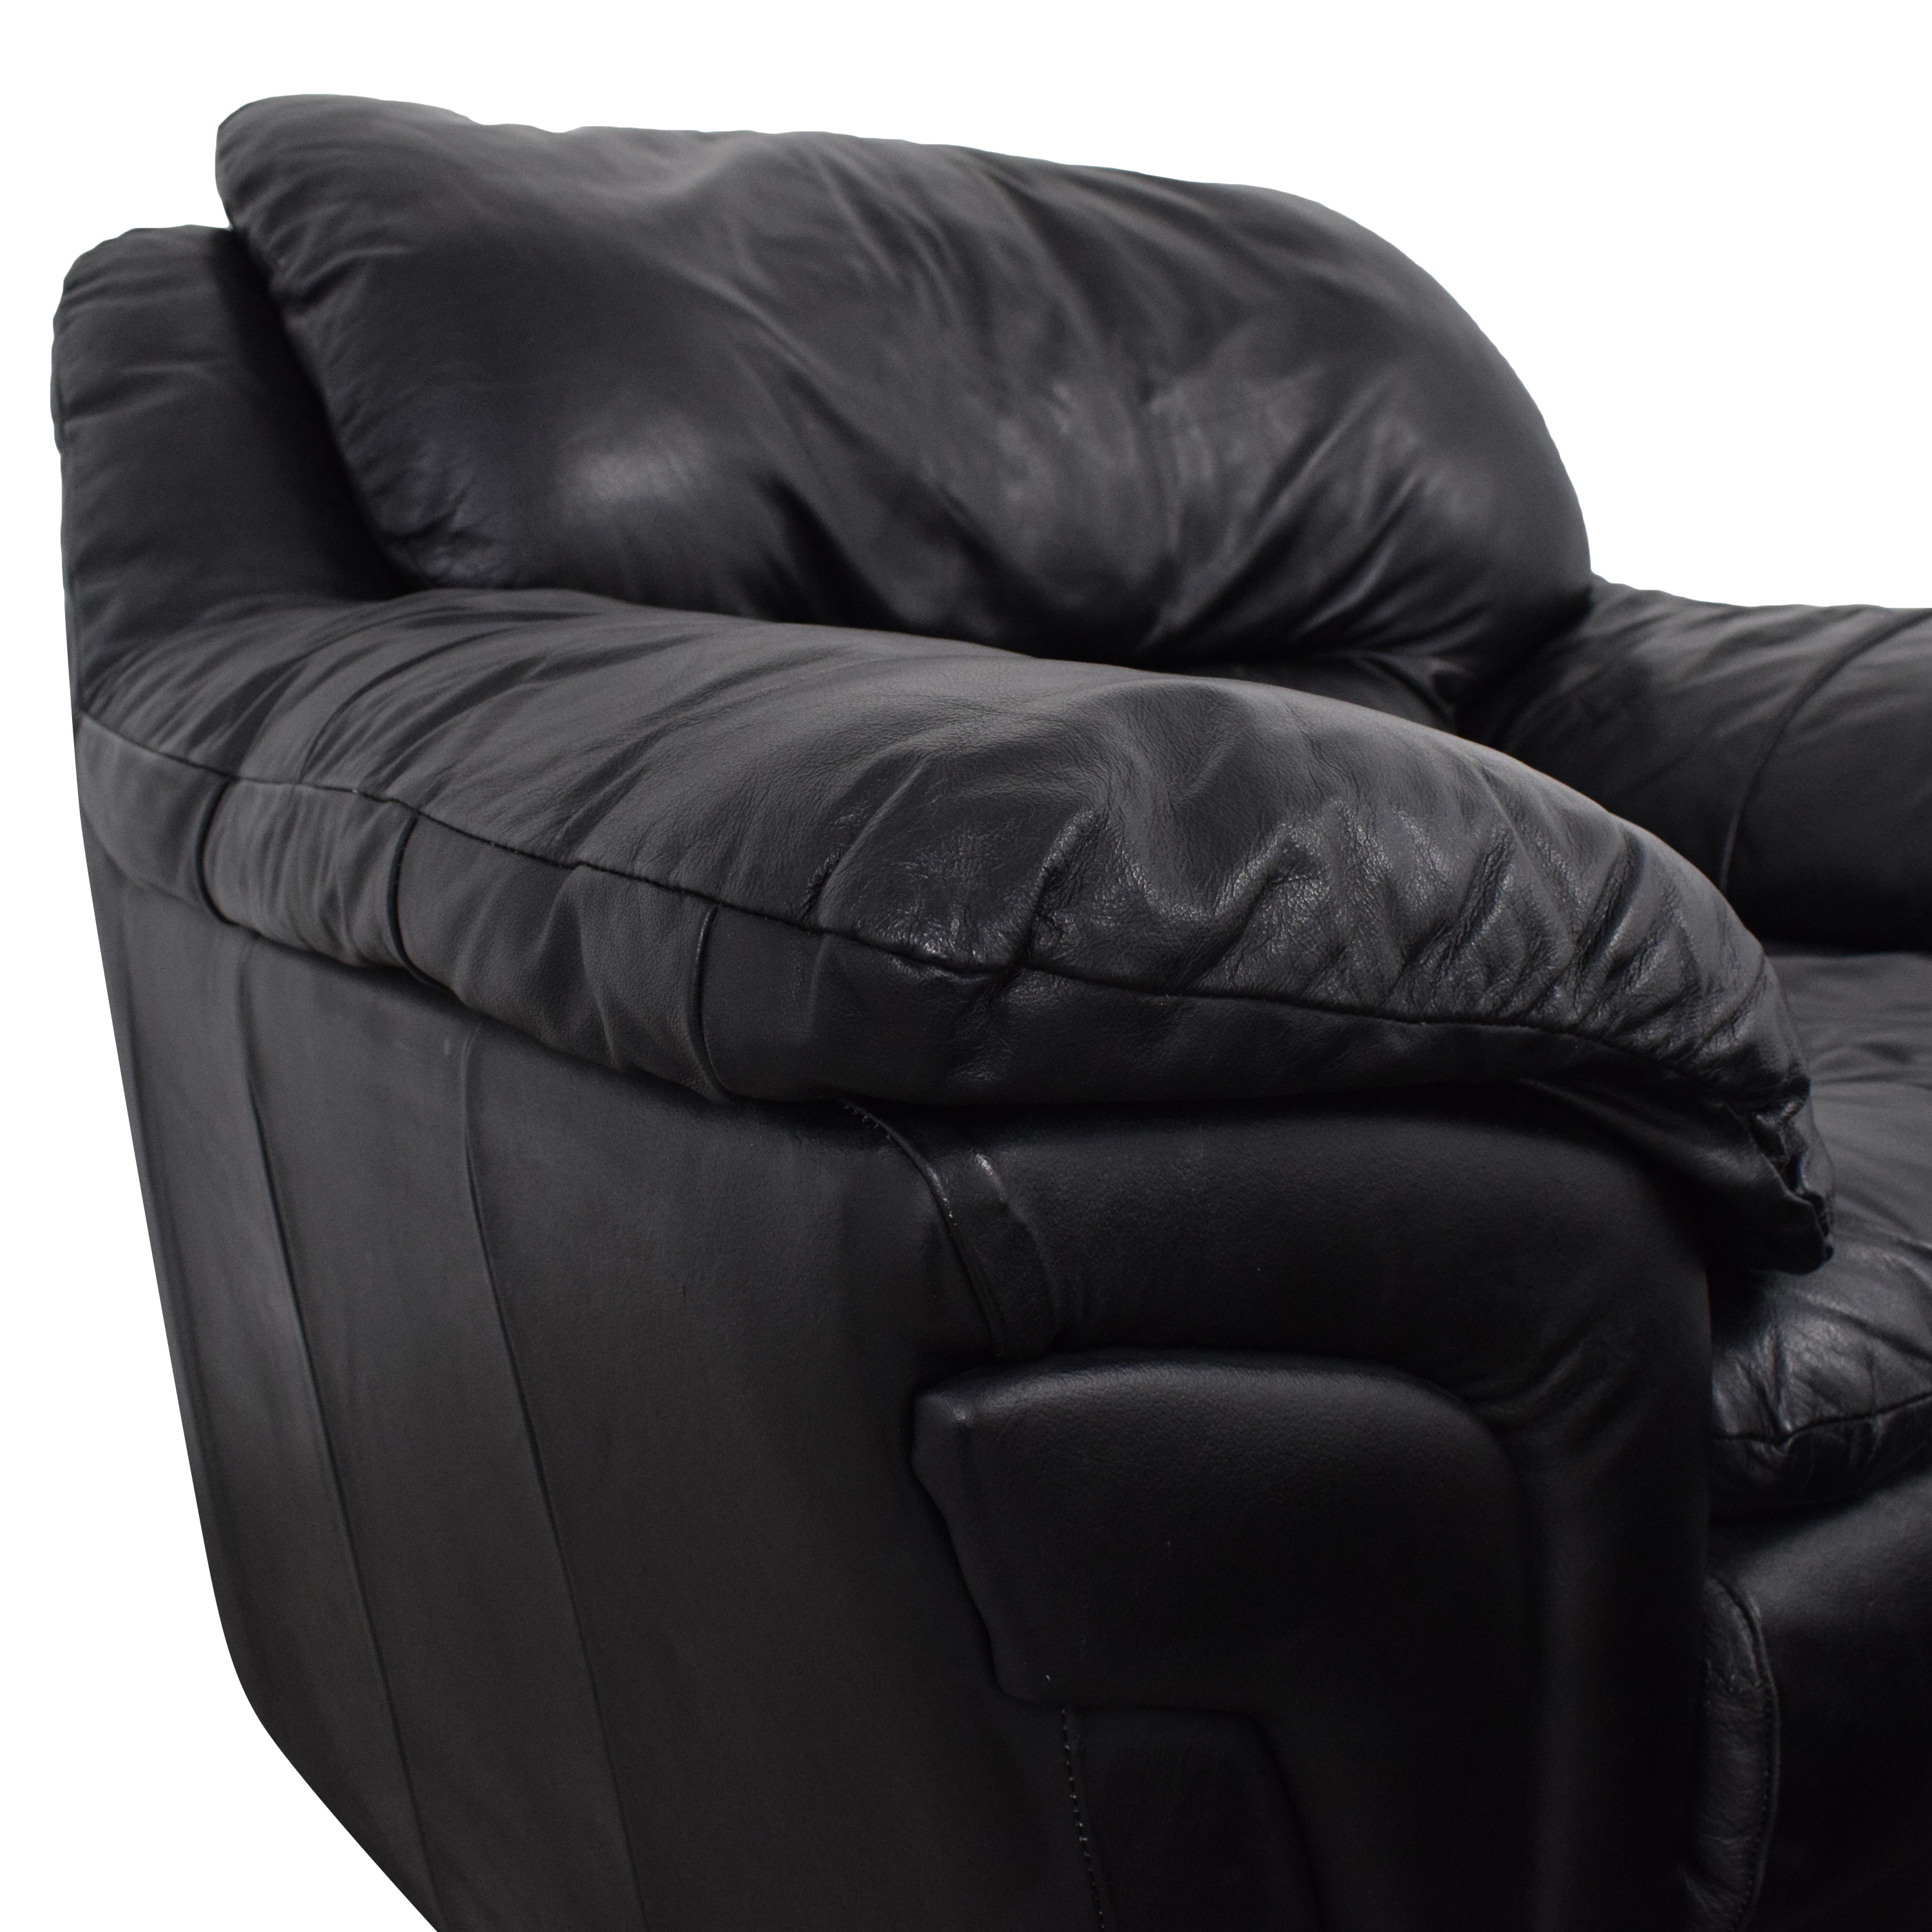 buy Soft Line SpA Chair with Ottoman Soft Line SpA Chairs